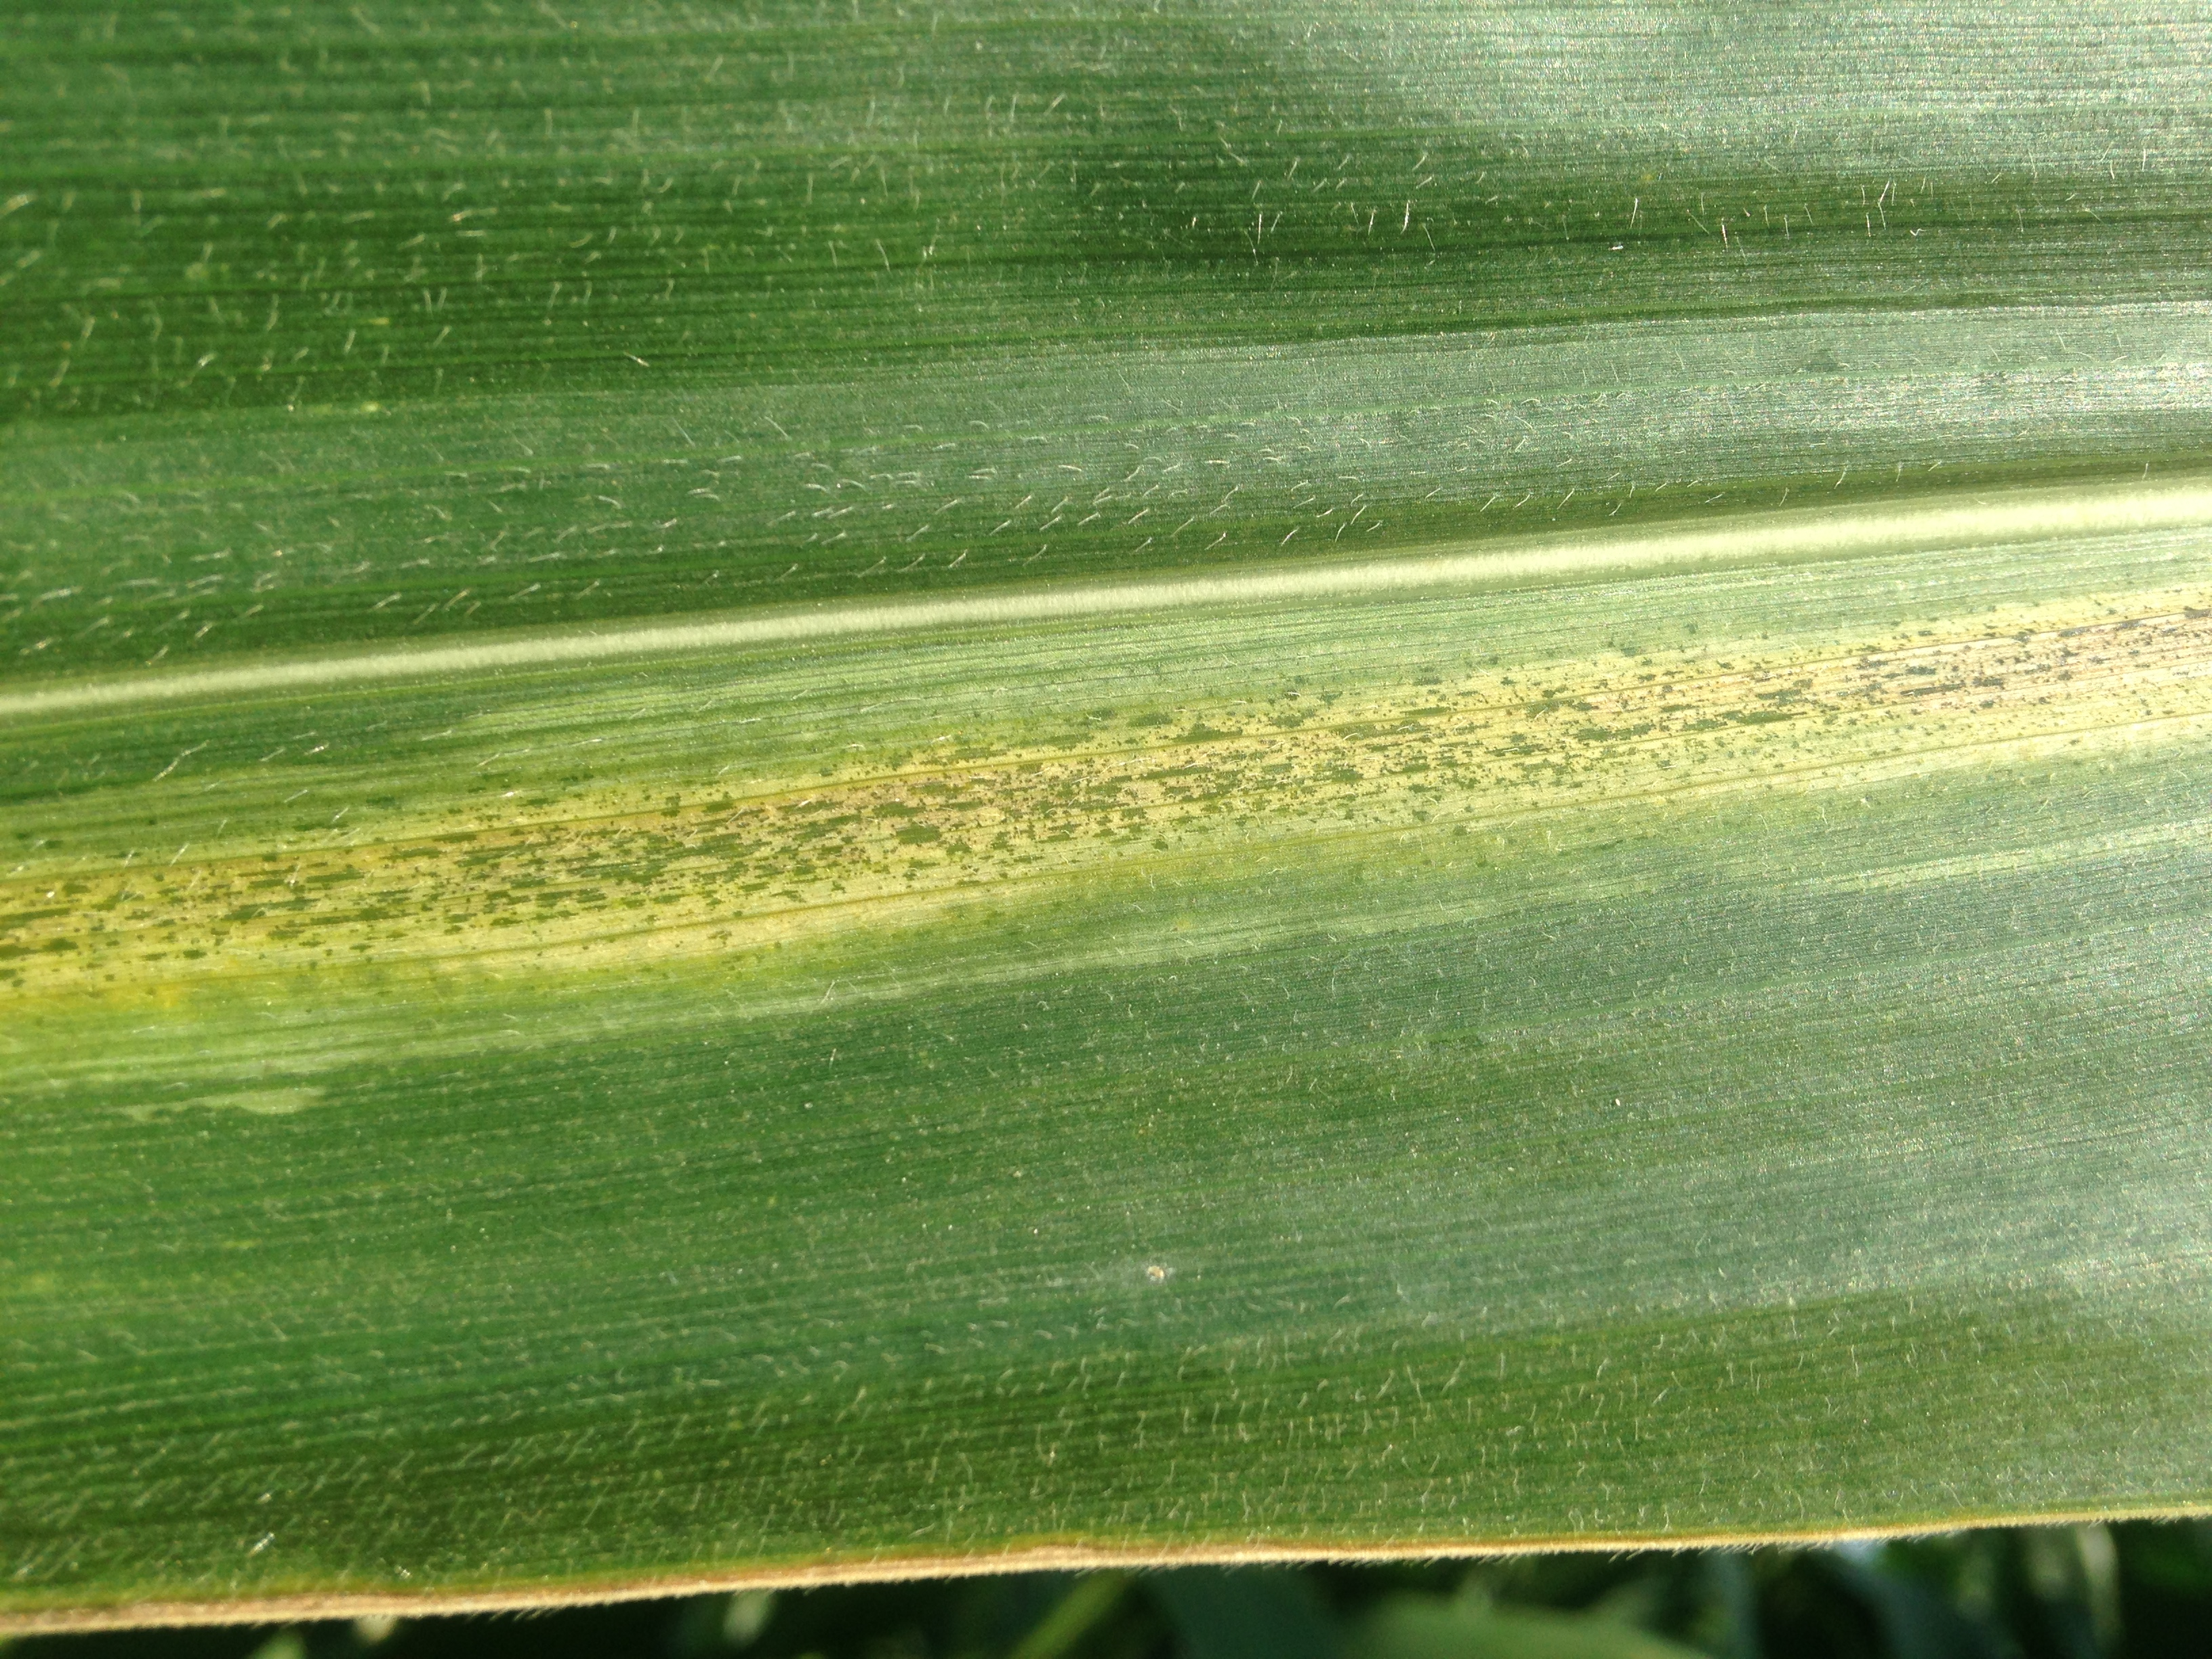 Distinctive freckles visible as dark spots within lesions are indicative of Goss's wilt.